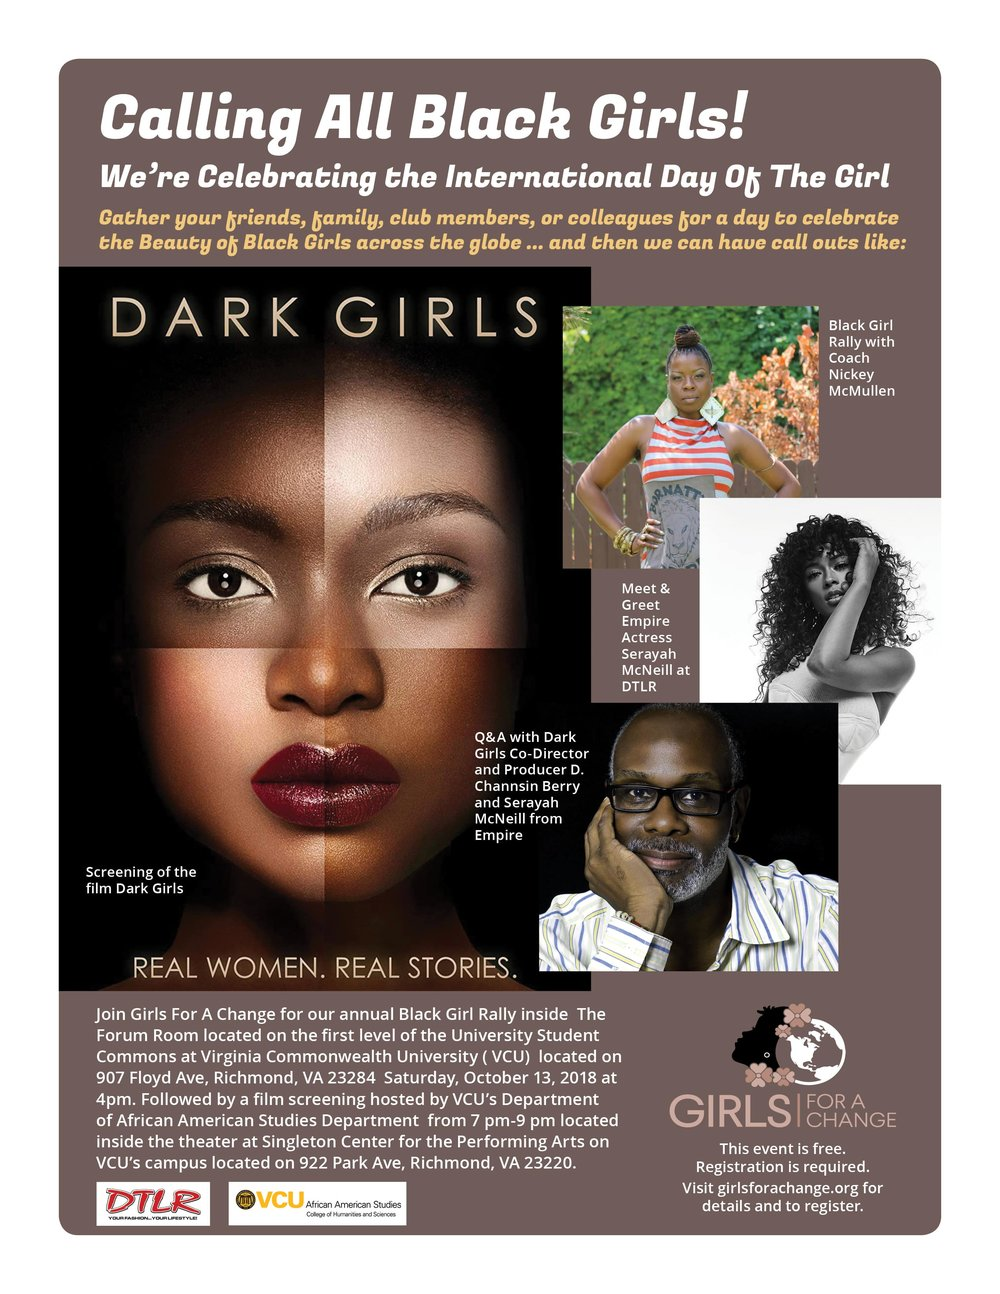 BLACK GIRL RALLY AND FREE FLIM SCREENING - WHEN: SATURDAY, OCTOBER 13, 2018TIME: 4 pm- 9 pmWHERE: 907 Floyd Avenue Richmond, VA 23284